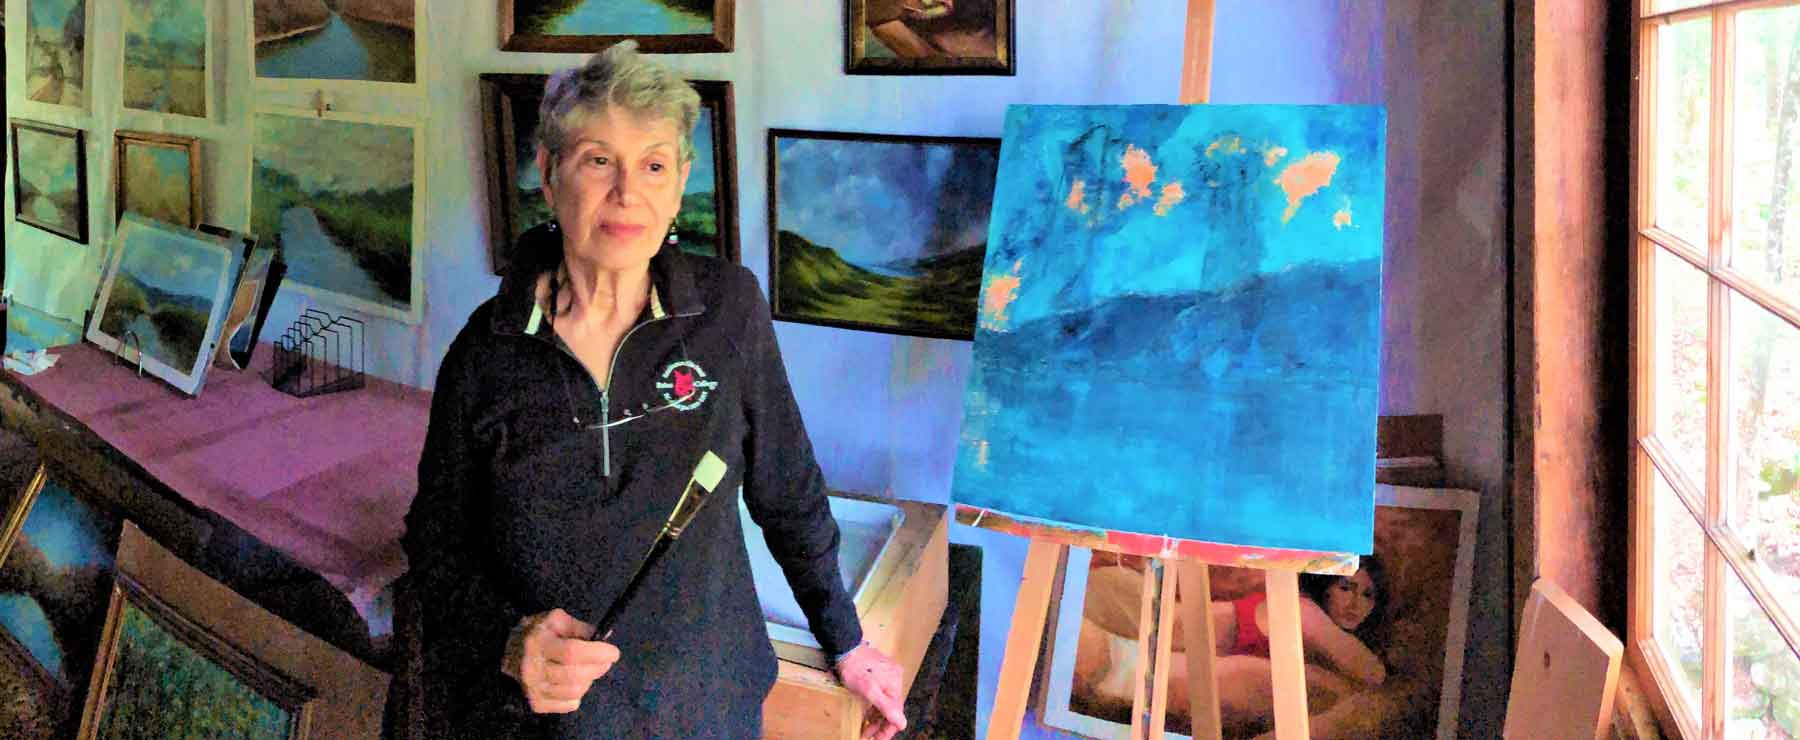 VT artist Laurie Alberts at DaVallia Gallery